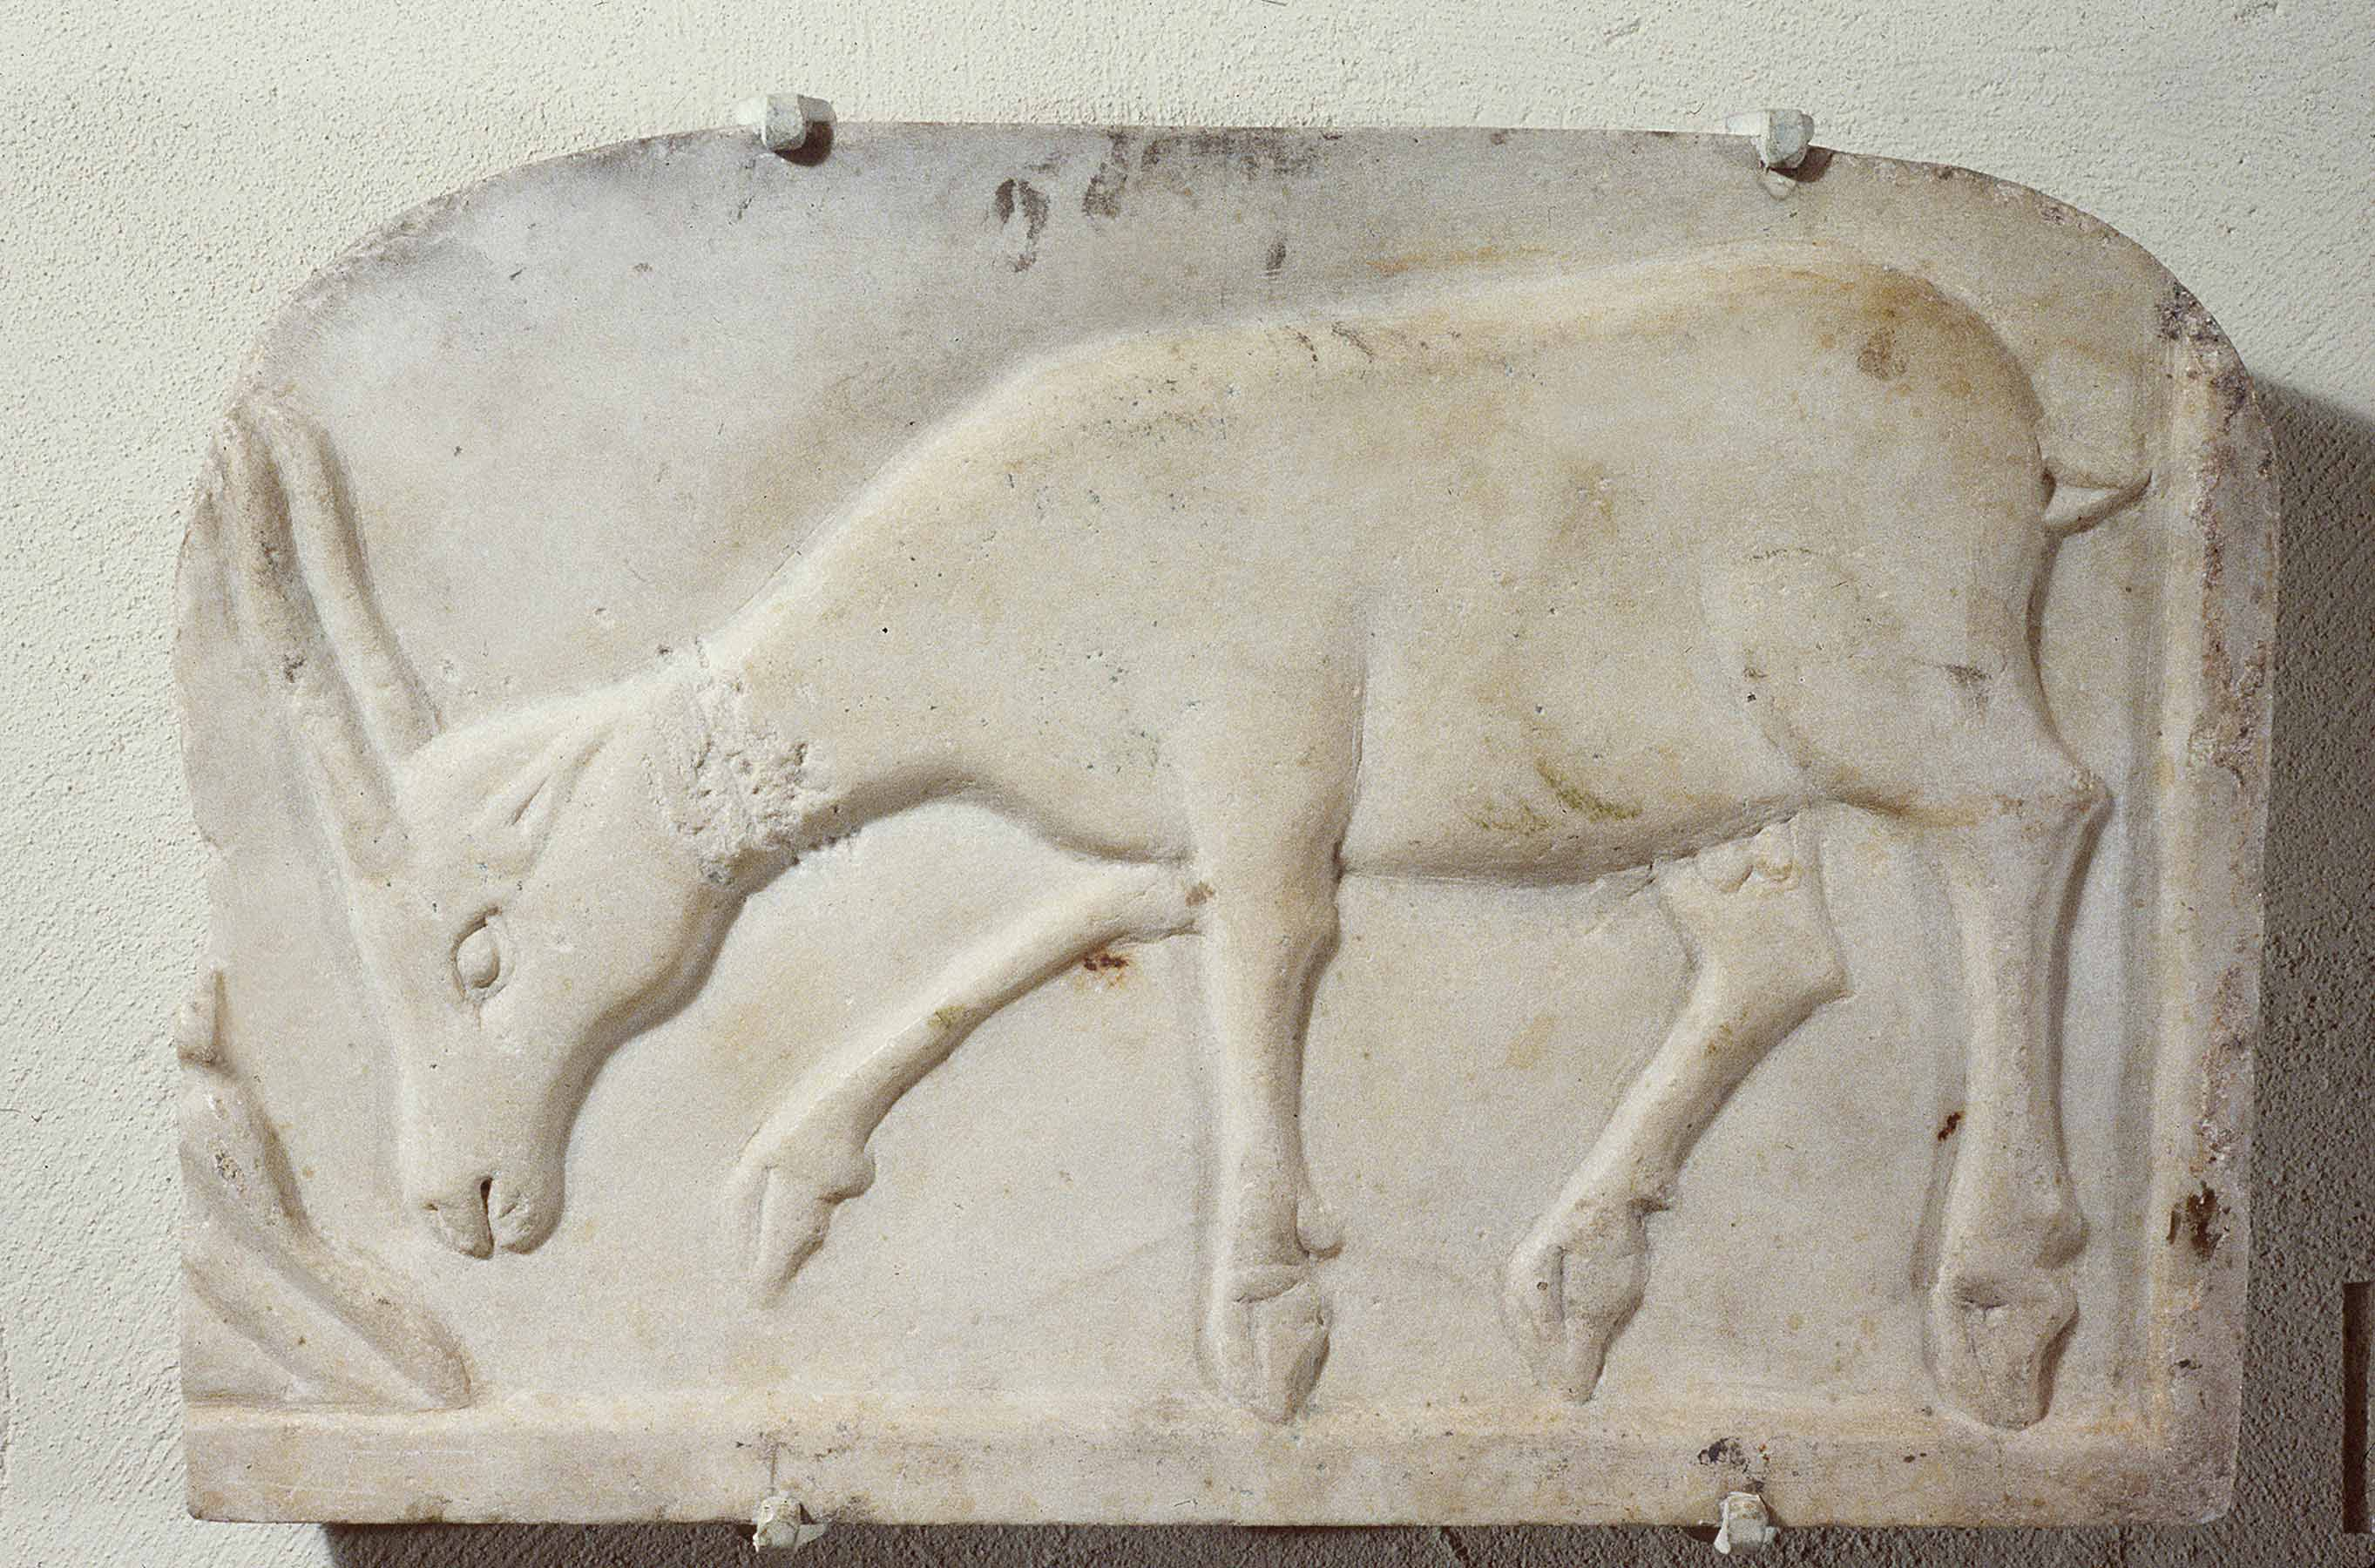 BZ.1936.44, Antelope Relief Sculpture